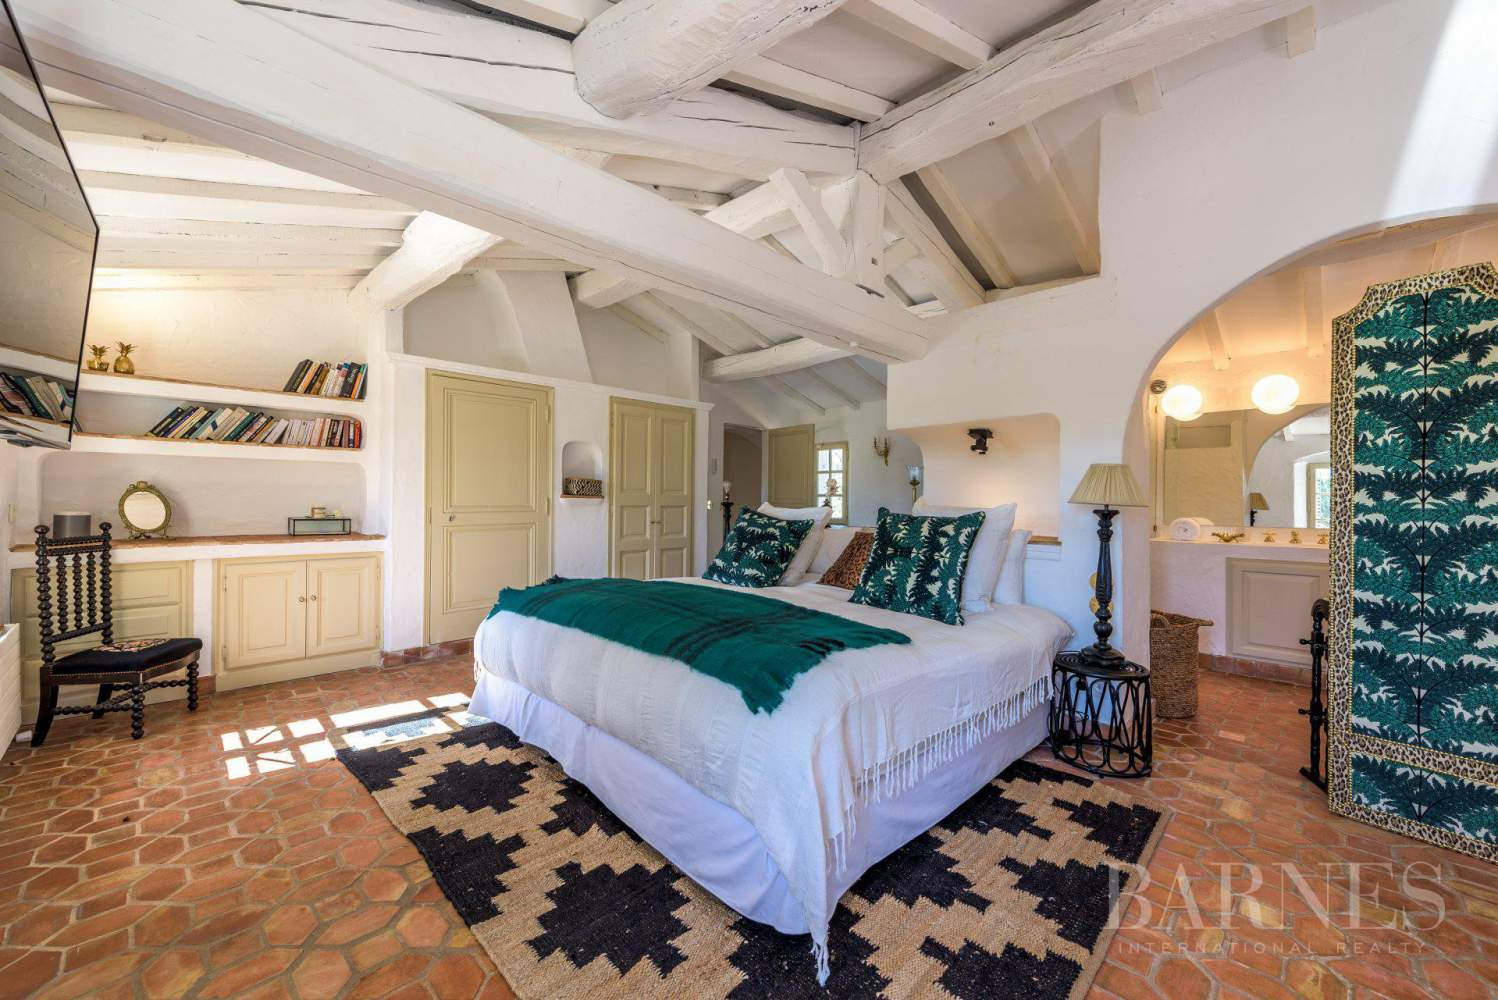 GOLFE DE SAINT-TROPEZ - LA CROIX VALMER - Beautiful Provencal house - 6 bedrooms - Pool picture 12